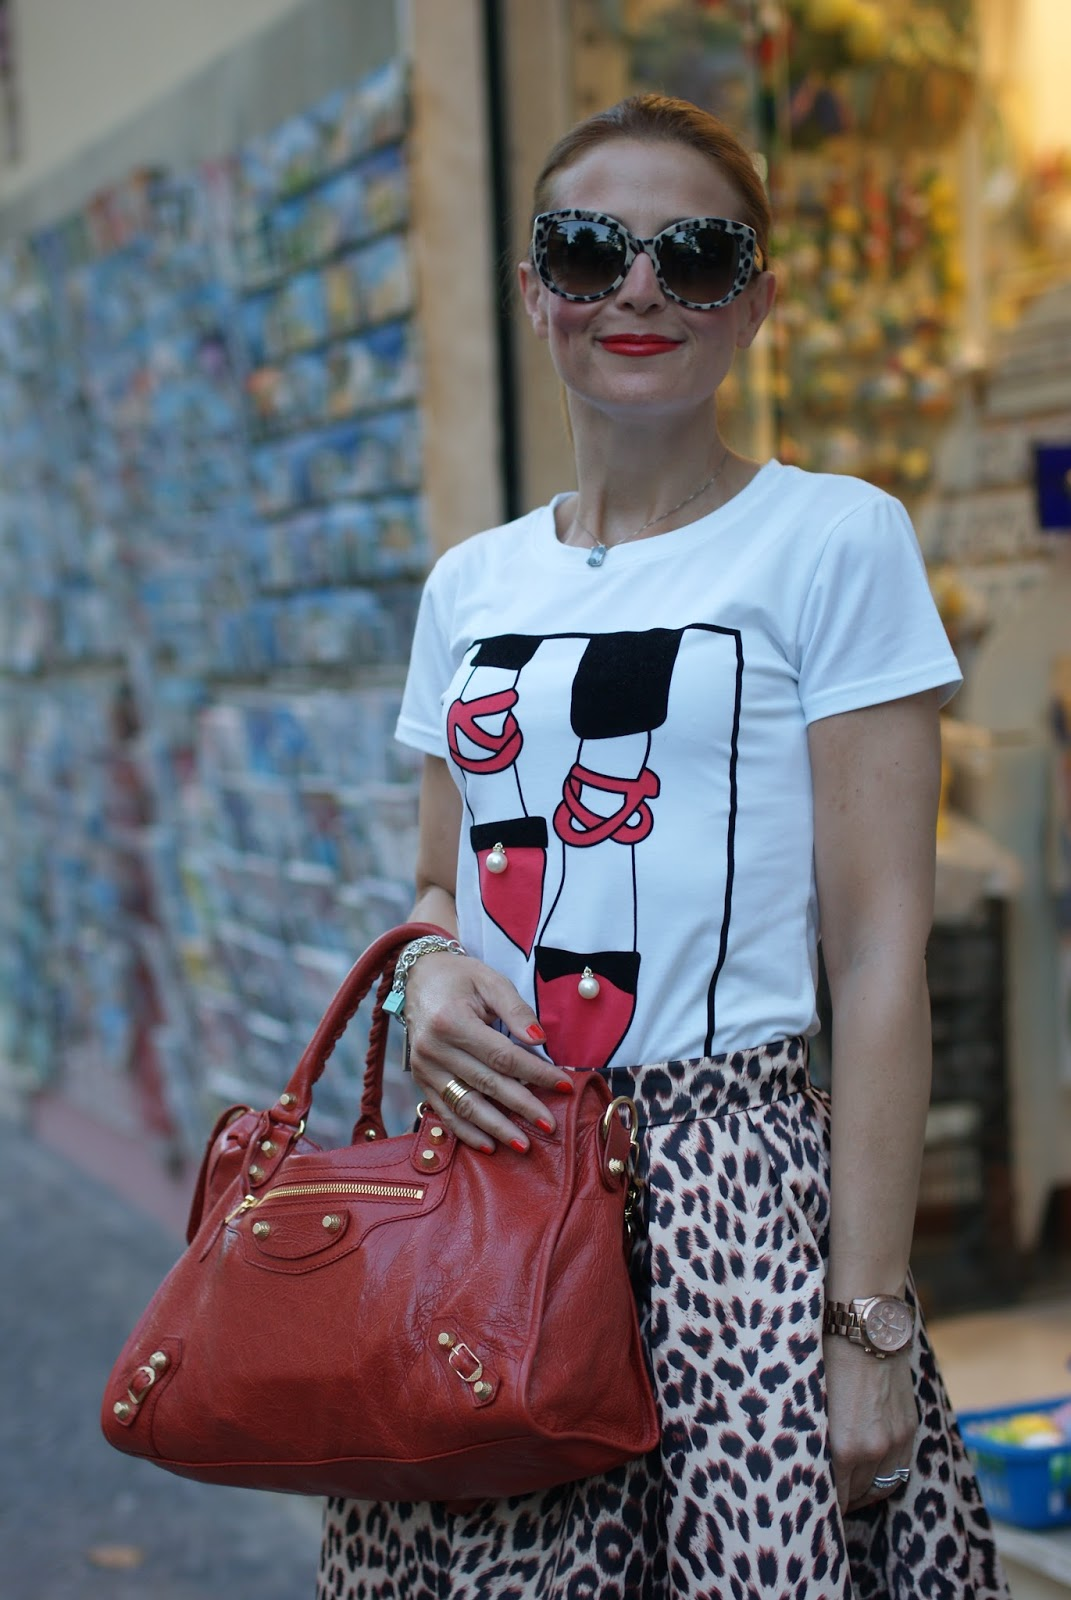 Leopard print is the new neutral with Dolce & Gabbana leopard sunglasses found on Giarre.com, leopard print midi skirt and coral Balenciaga city on Fashion and Cookies fashion blog, fashion blogger style